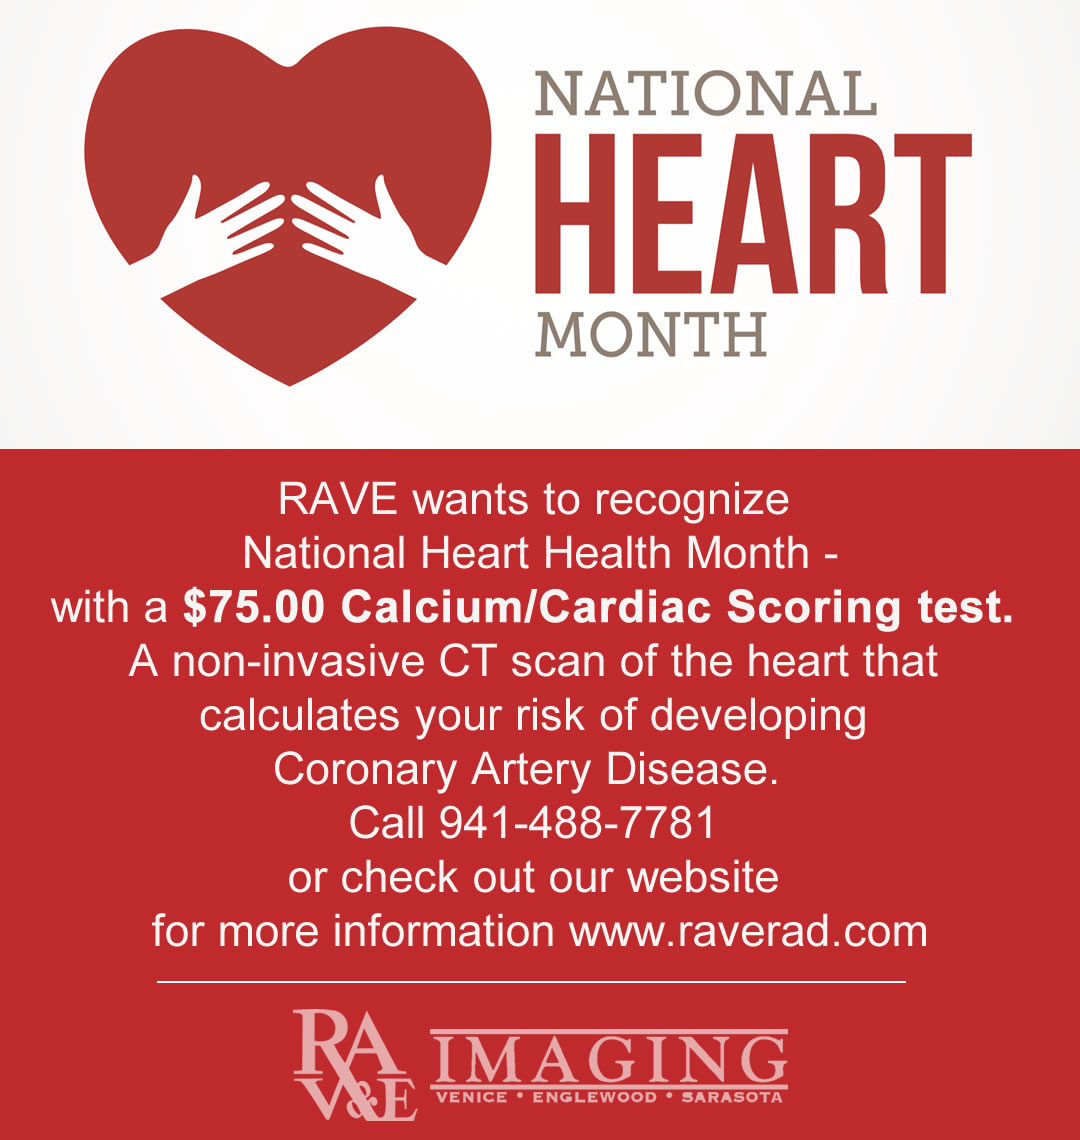 National Heart Month February 2020